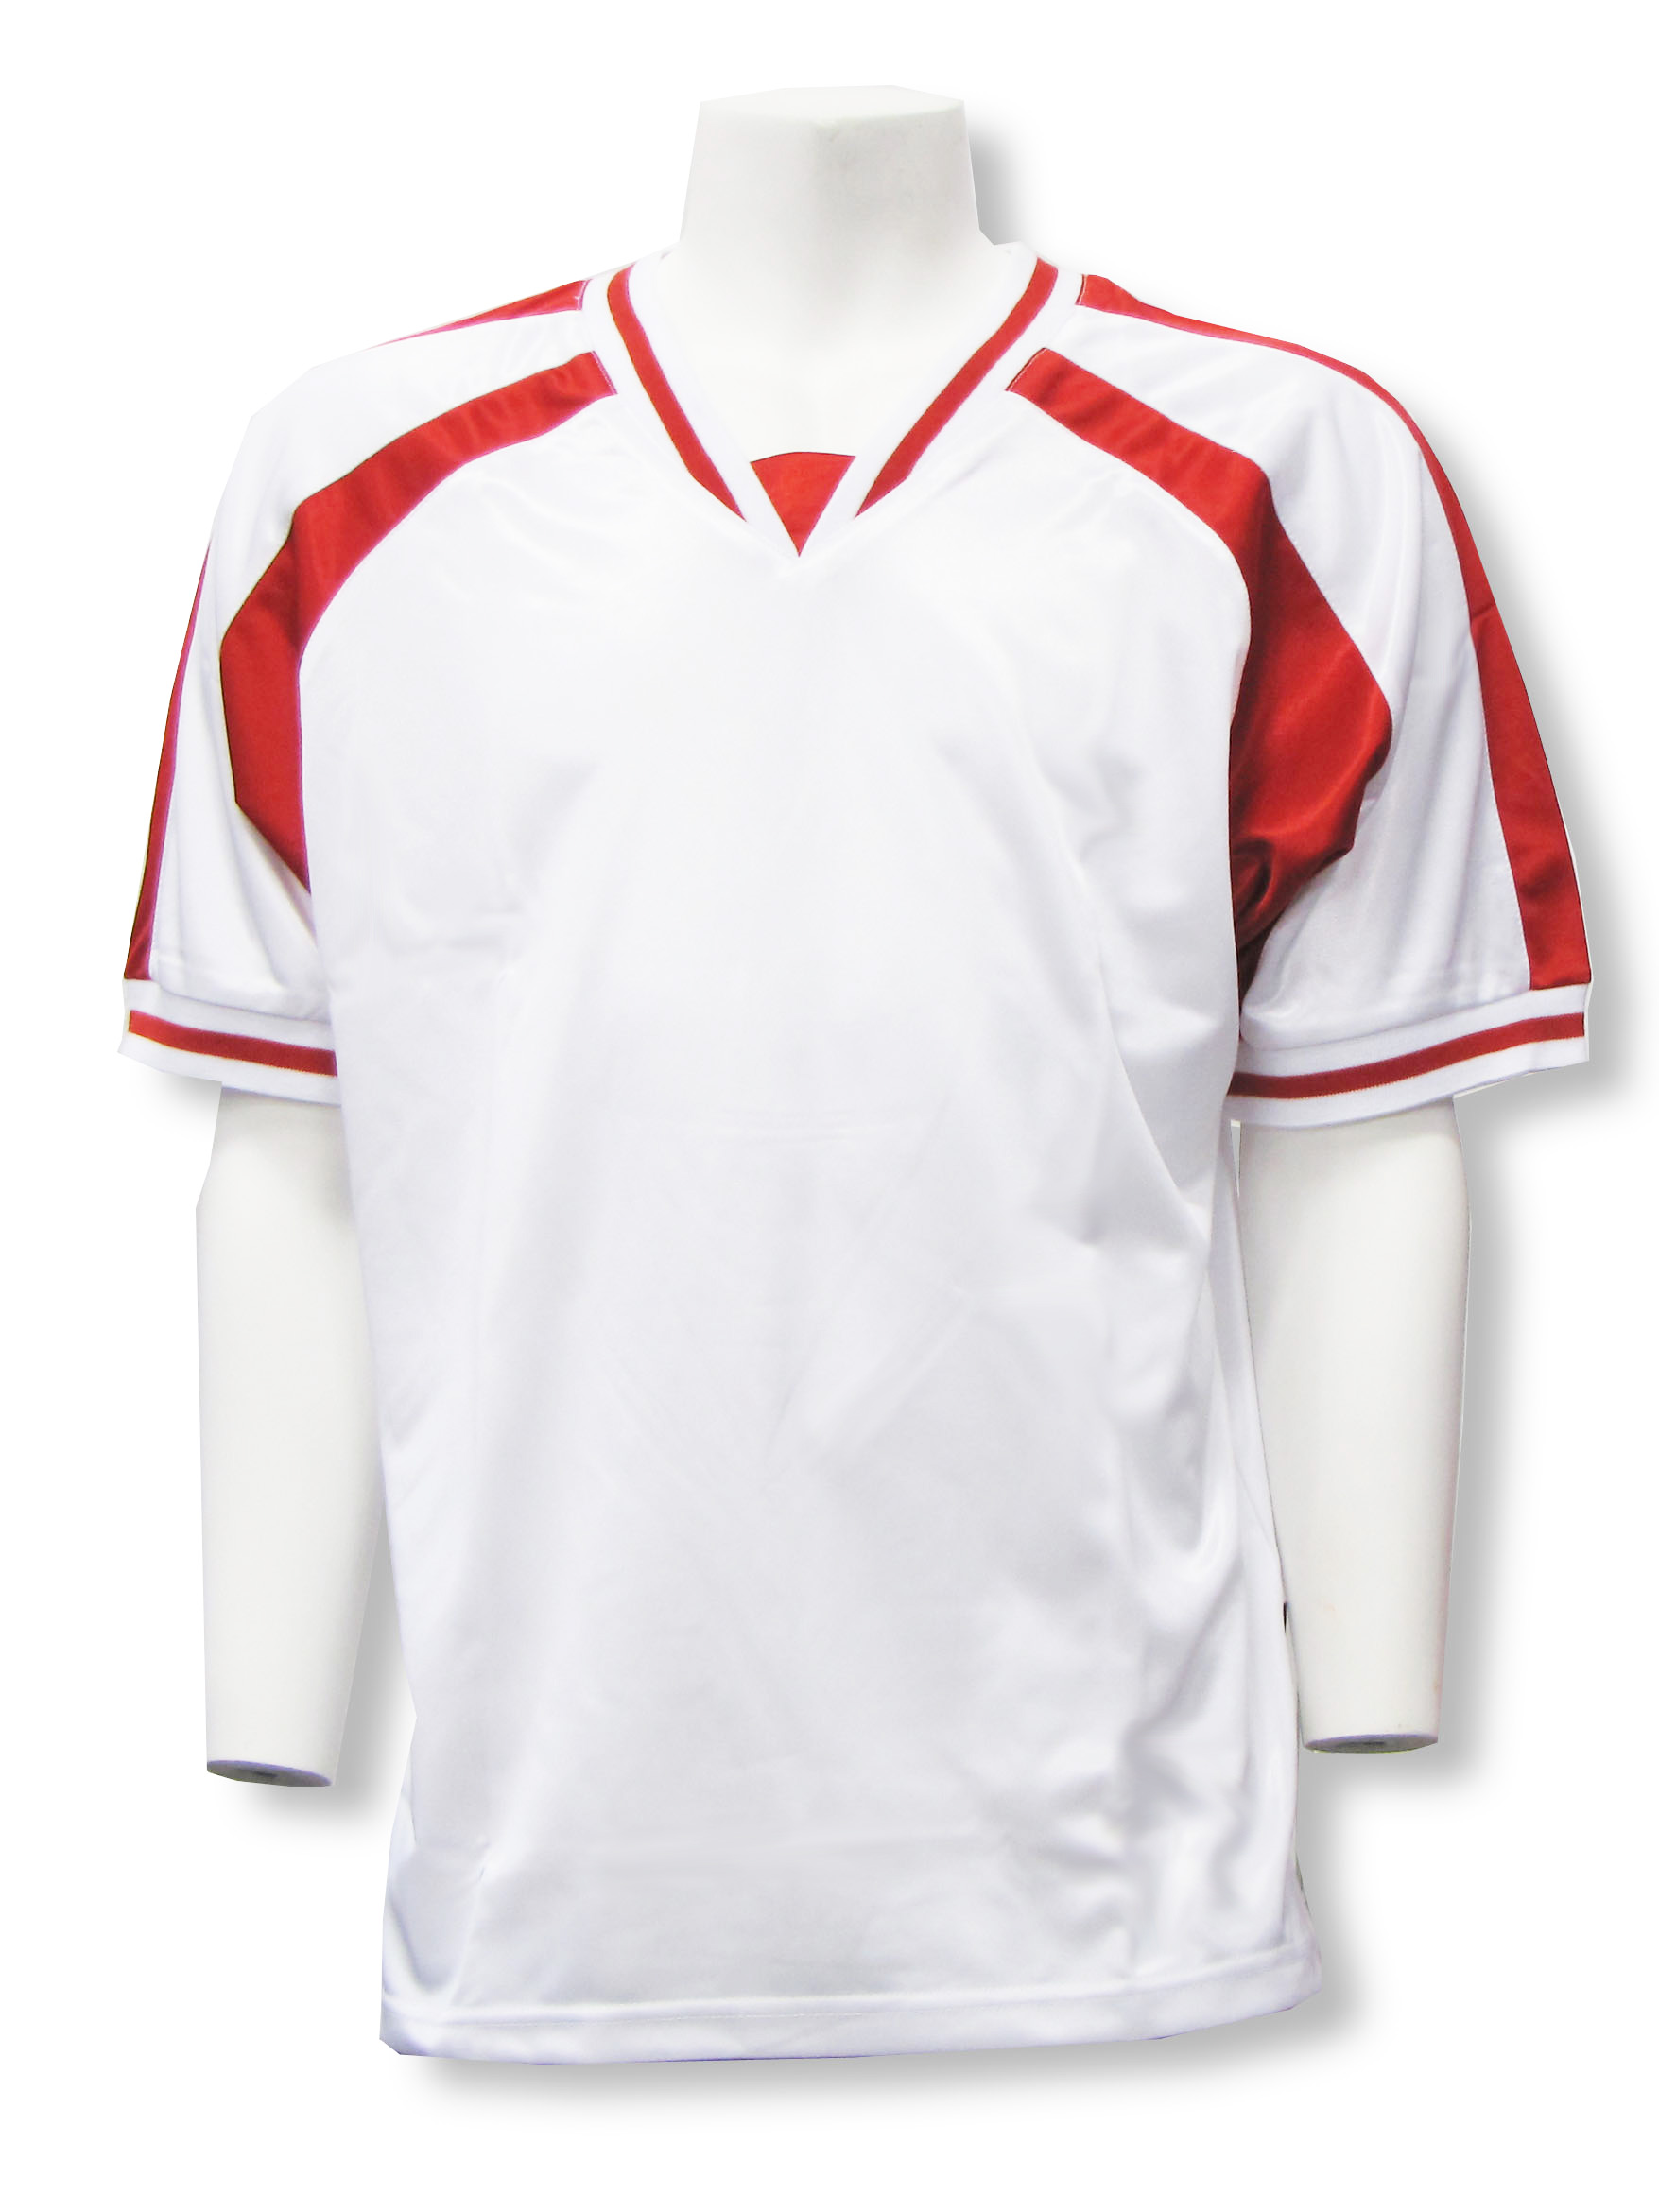 Spitfire soccer jersey in white/red by Code Four Athletics